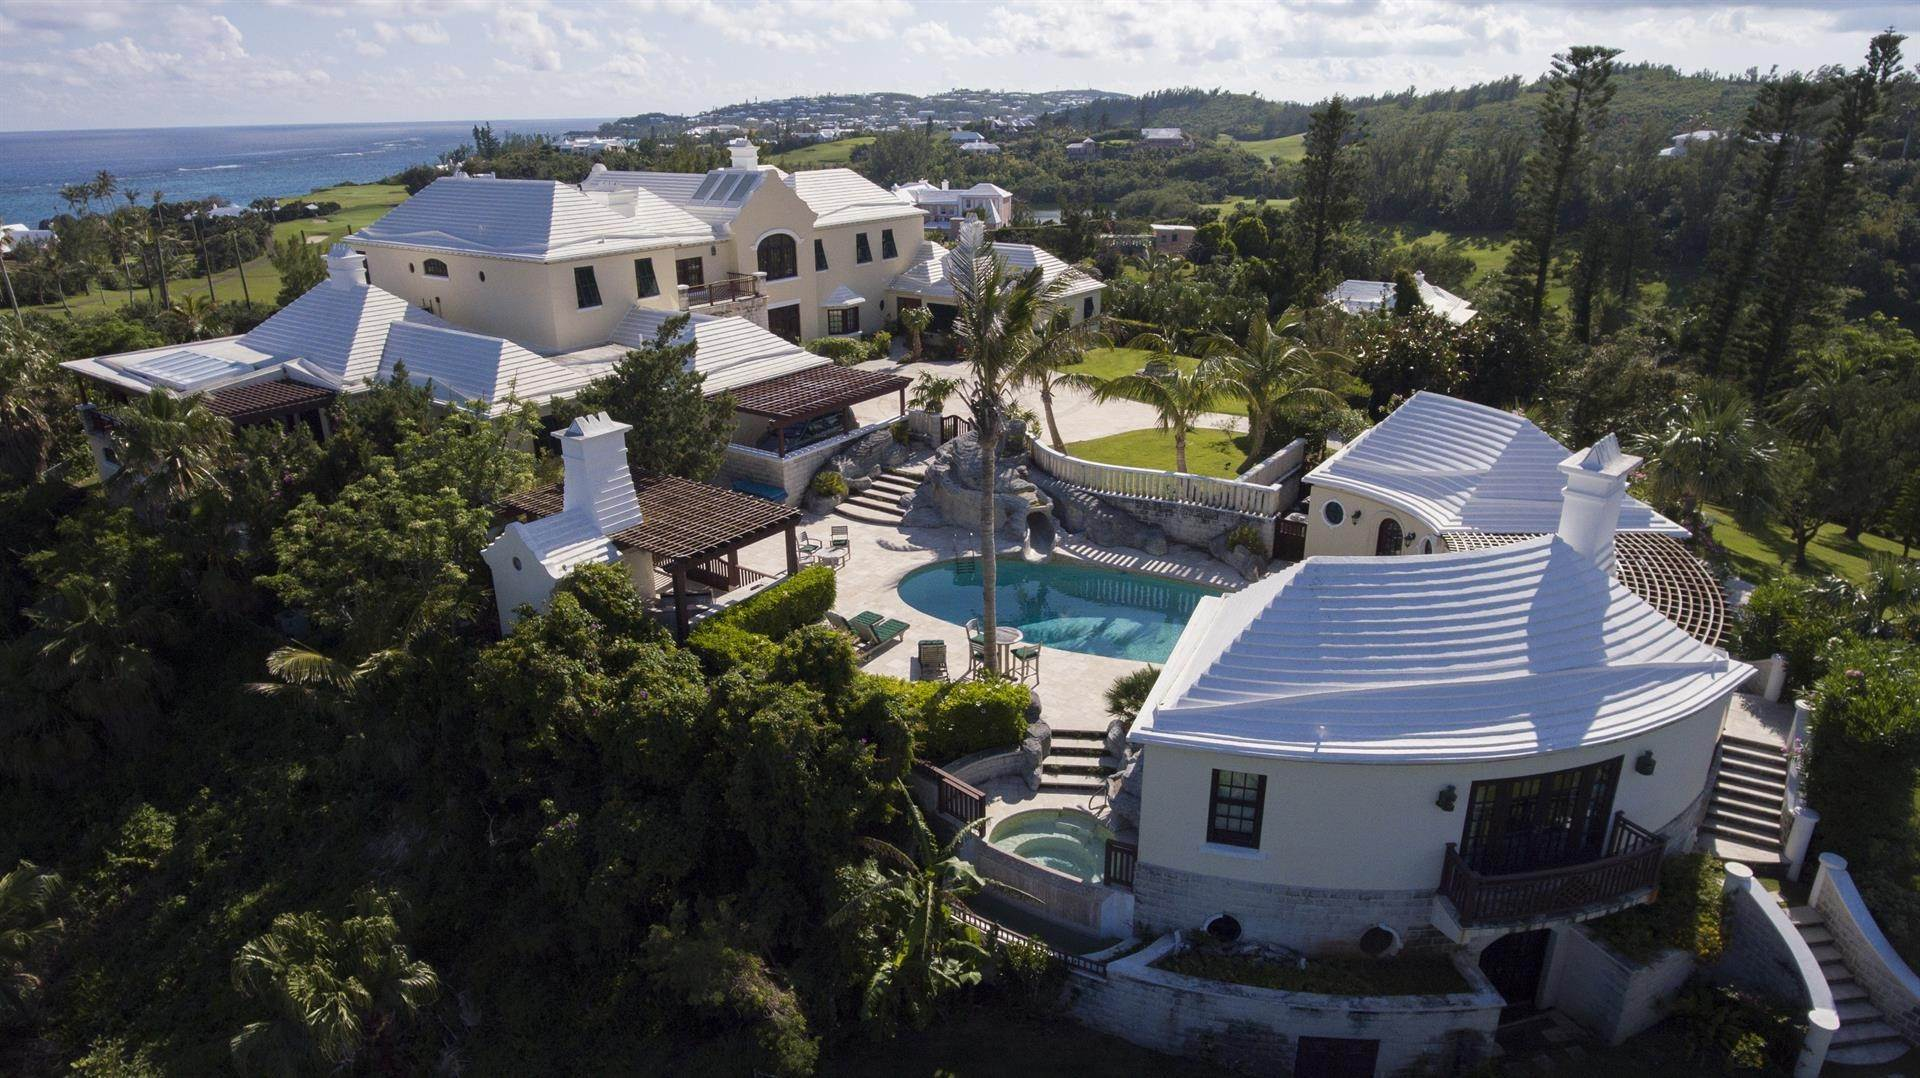 Địa ốc vì Bán tại Roughill In Tucker's Town Roughill In Tucker's Town, 6 Long Lane,Bermuda – Sinclair Realty